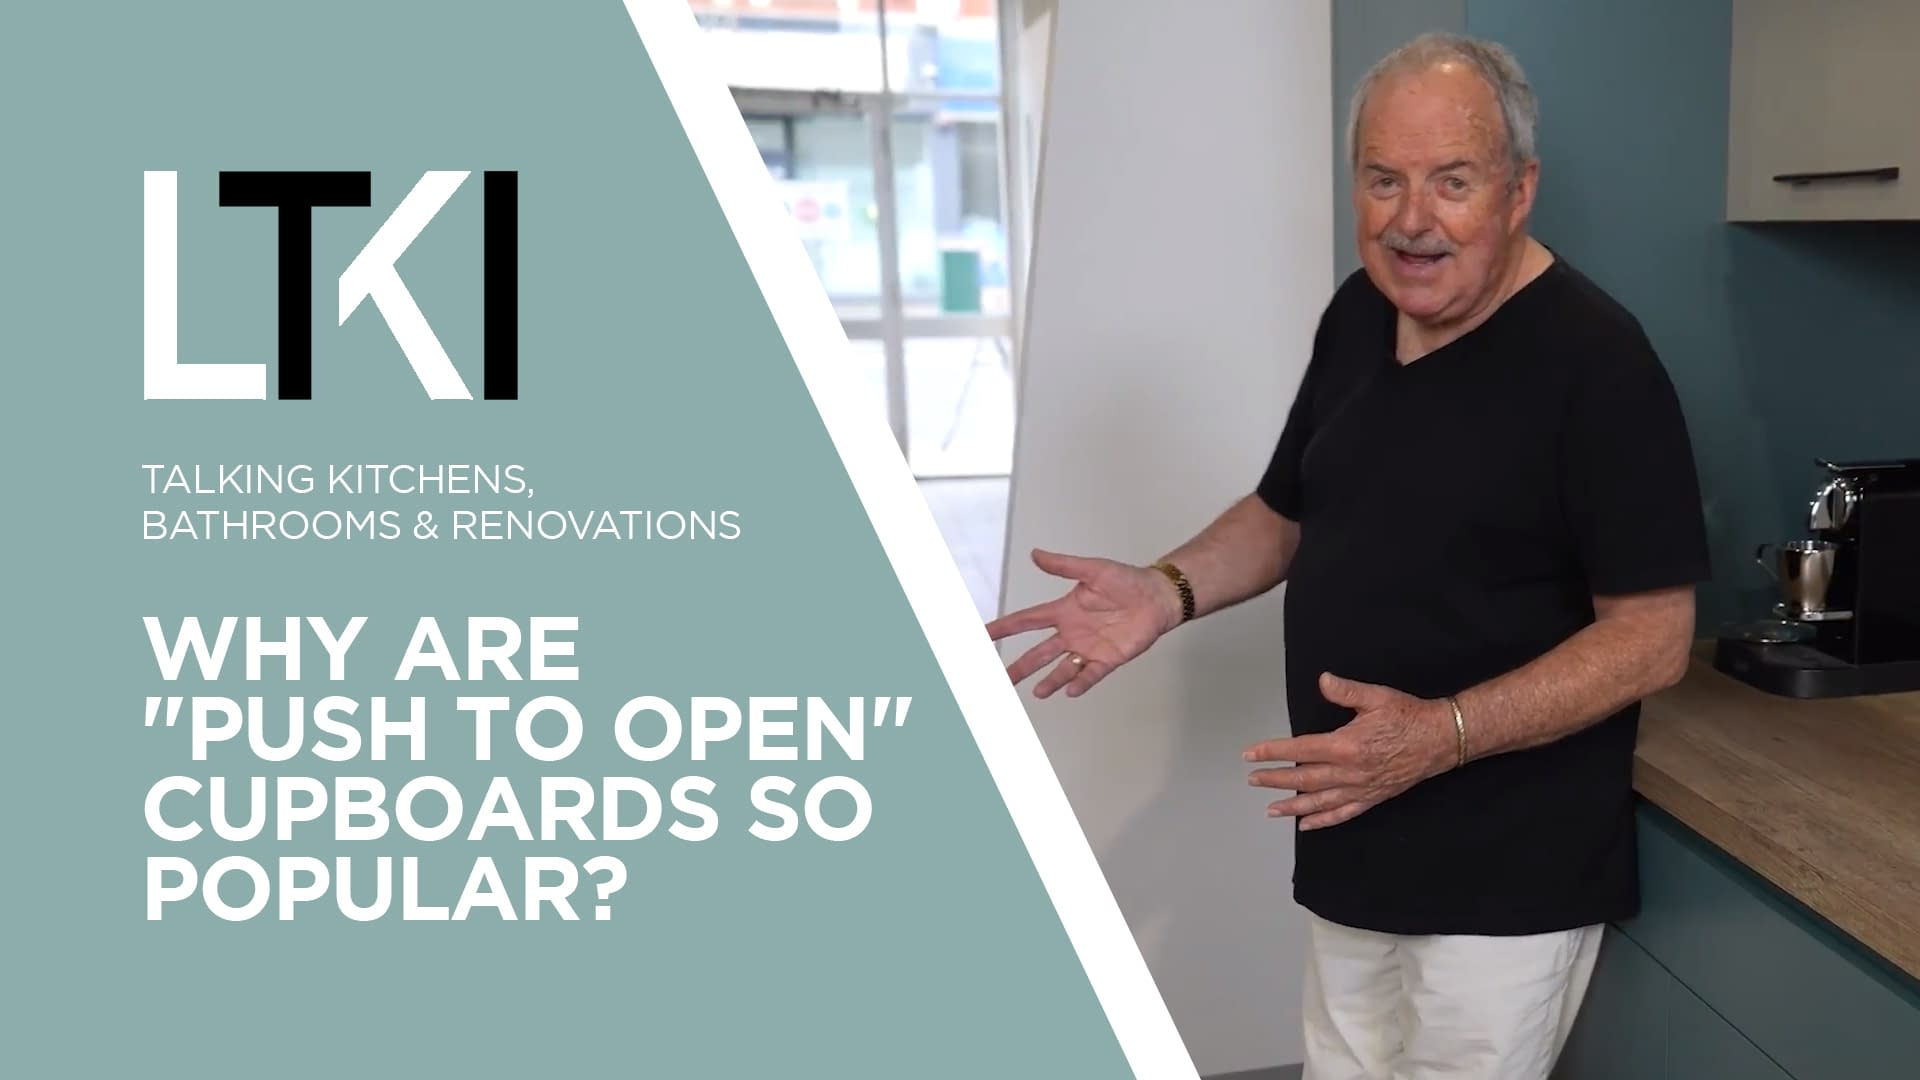 """Talking Kitchens, Bathrooms & Renovations: Why Are """"Push To Open"""" Cupboards So Popular?"""